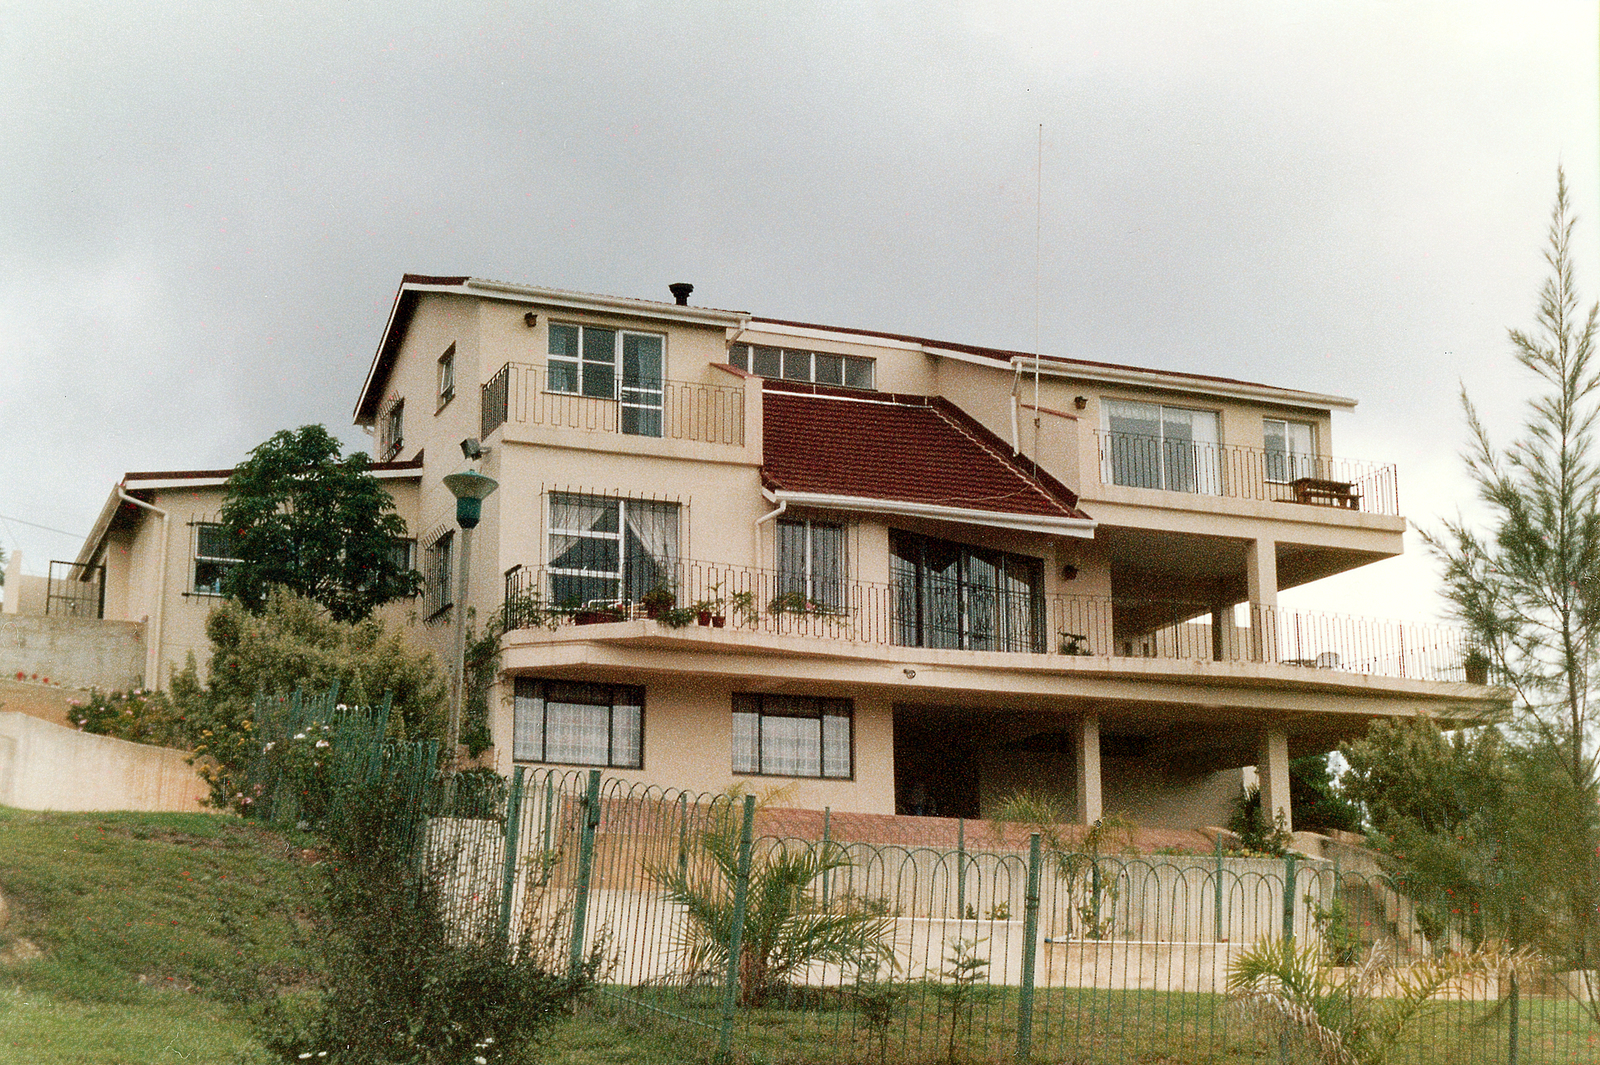 Mbabane - Standard Level Position Residence - 1986